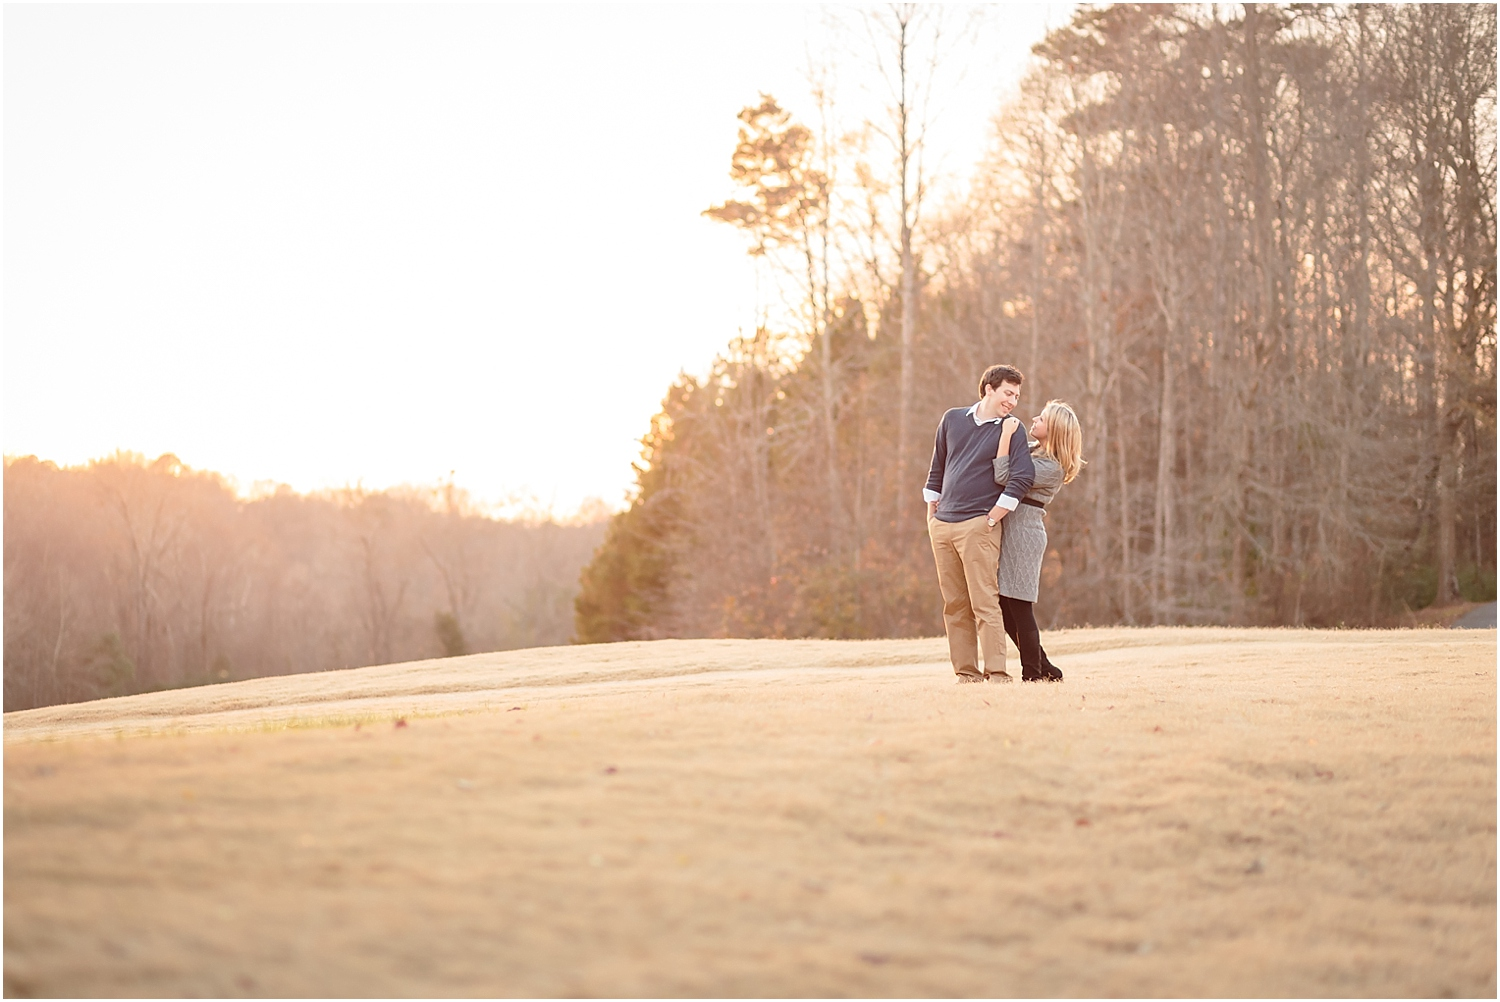 141207--0350clemson-engagement-shoot_blog.jpg